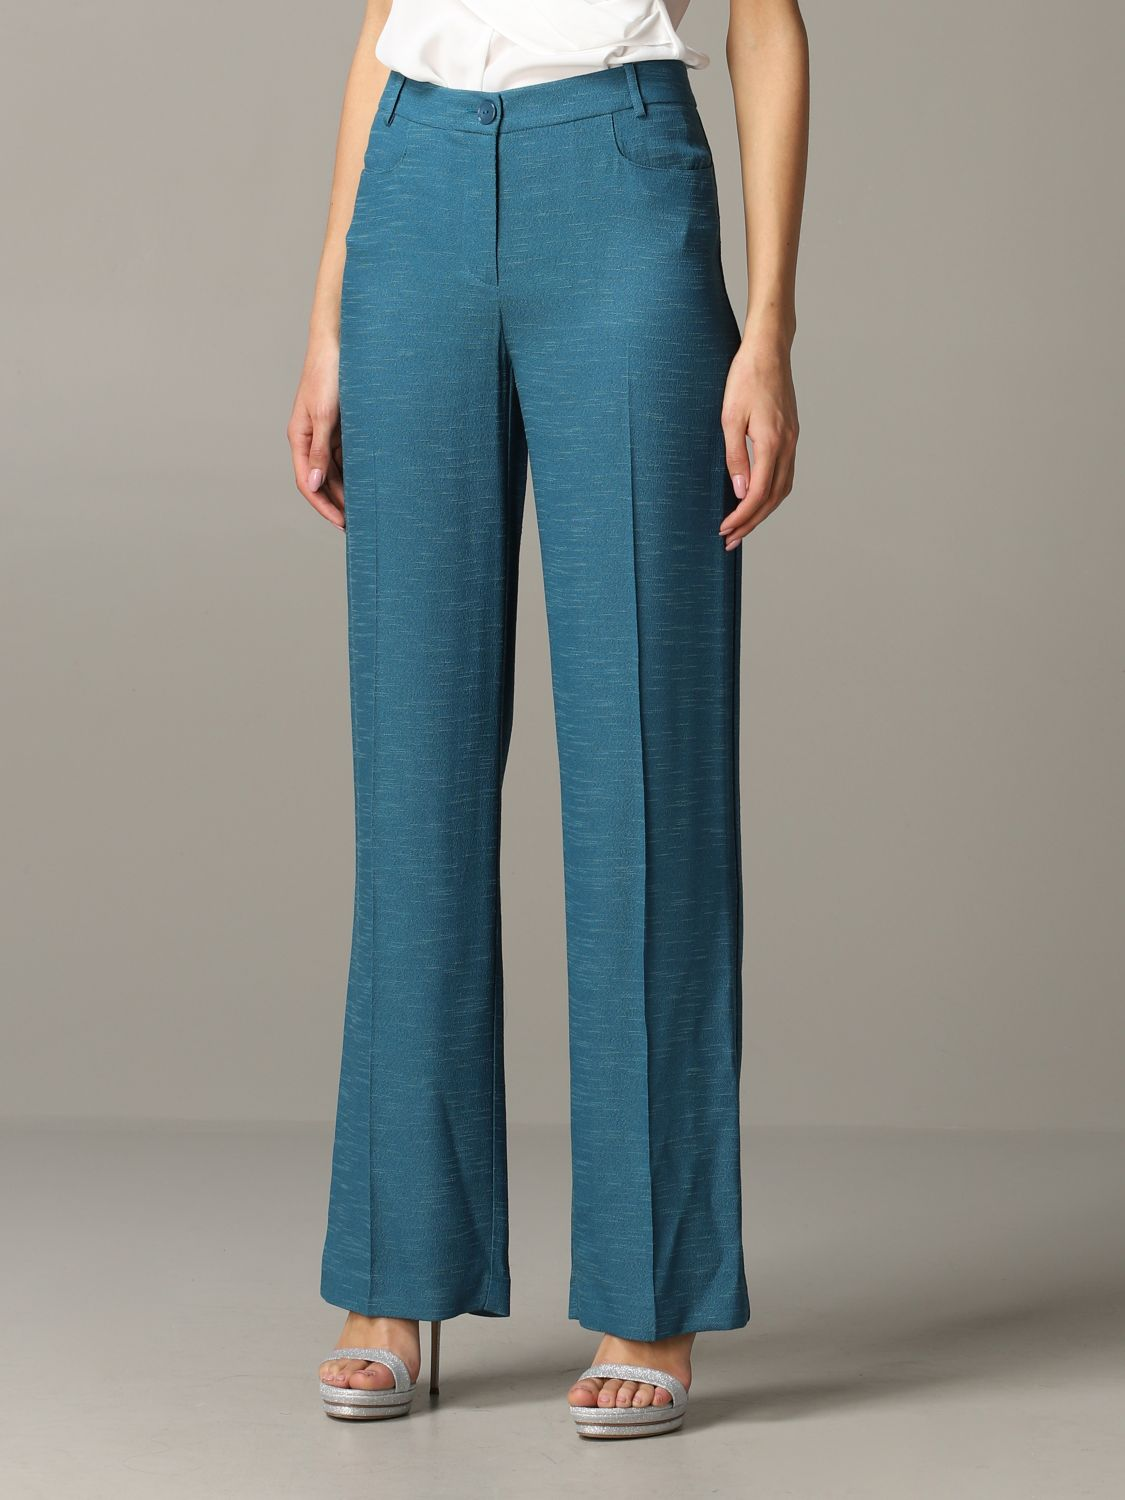 Patrizia Pepe wide trousers teal 4